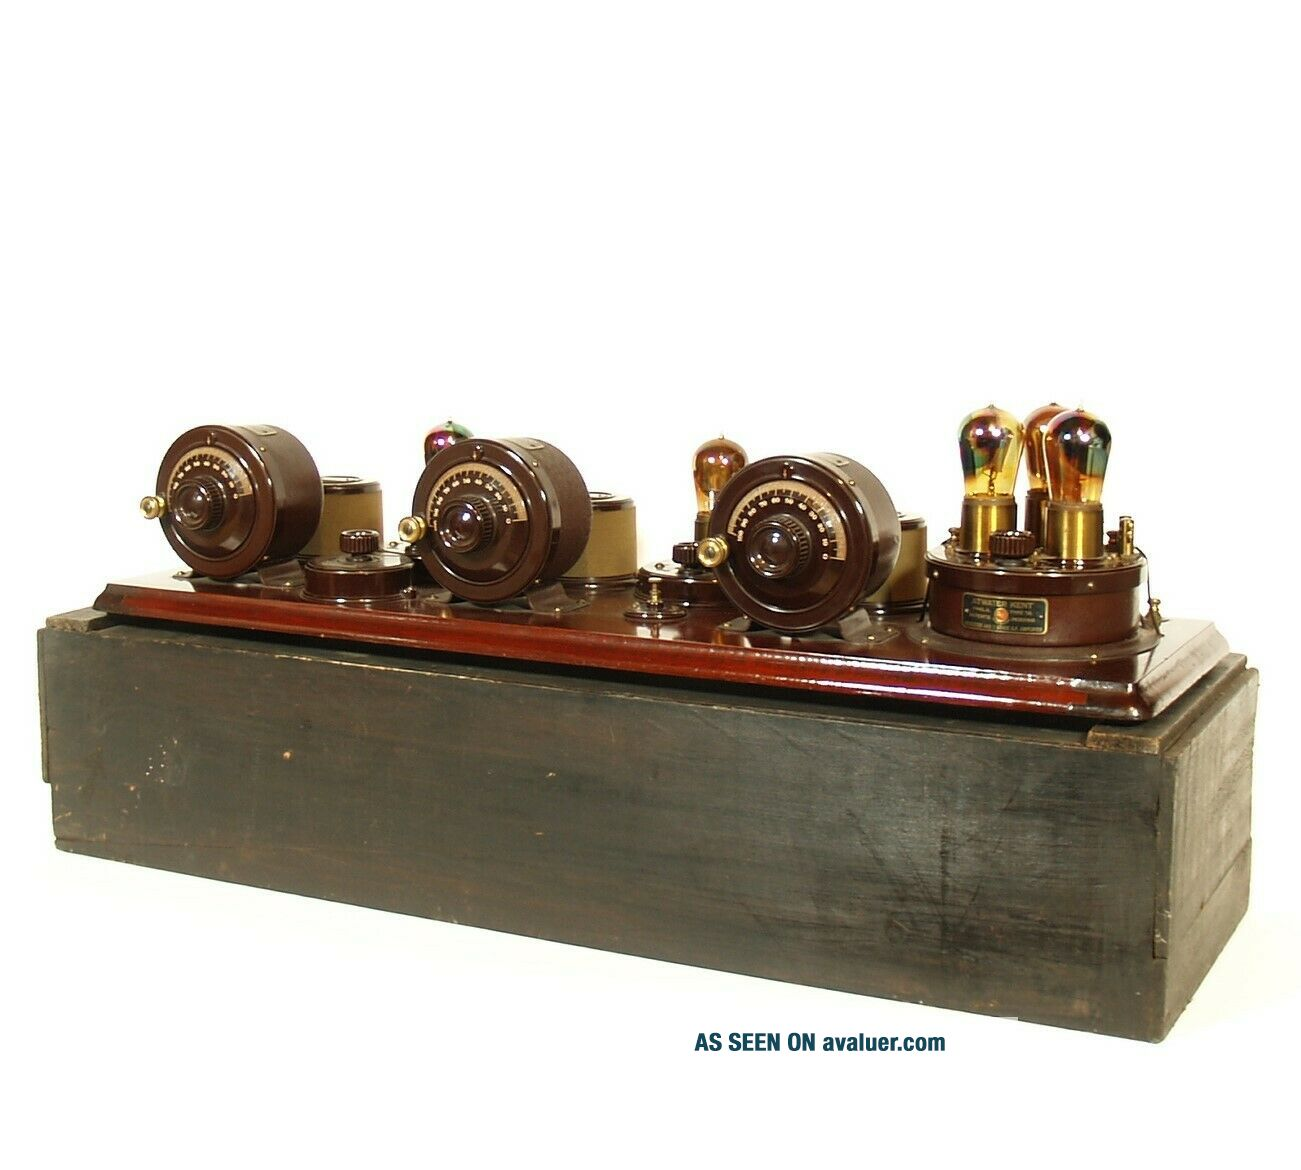 1923 Atwater Kent Model 10 Breadboard Radio In Factory Crate All